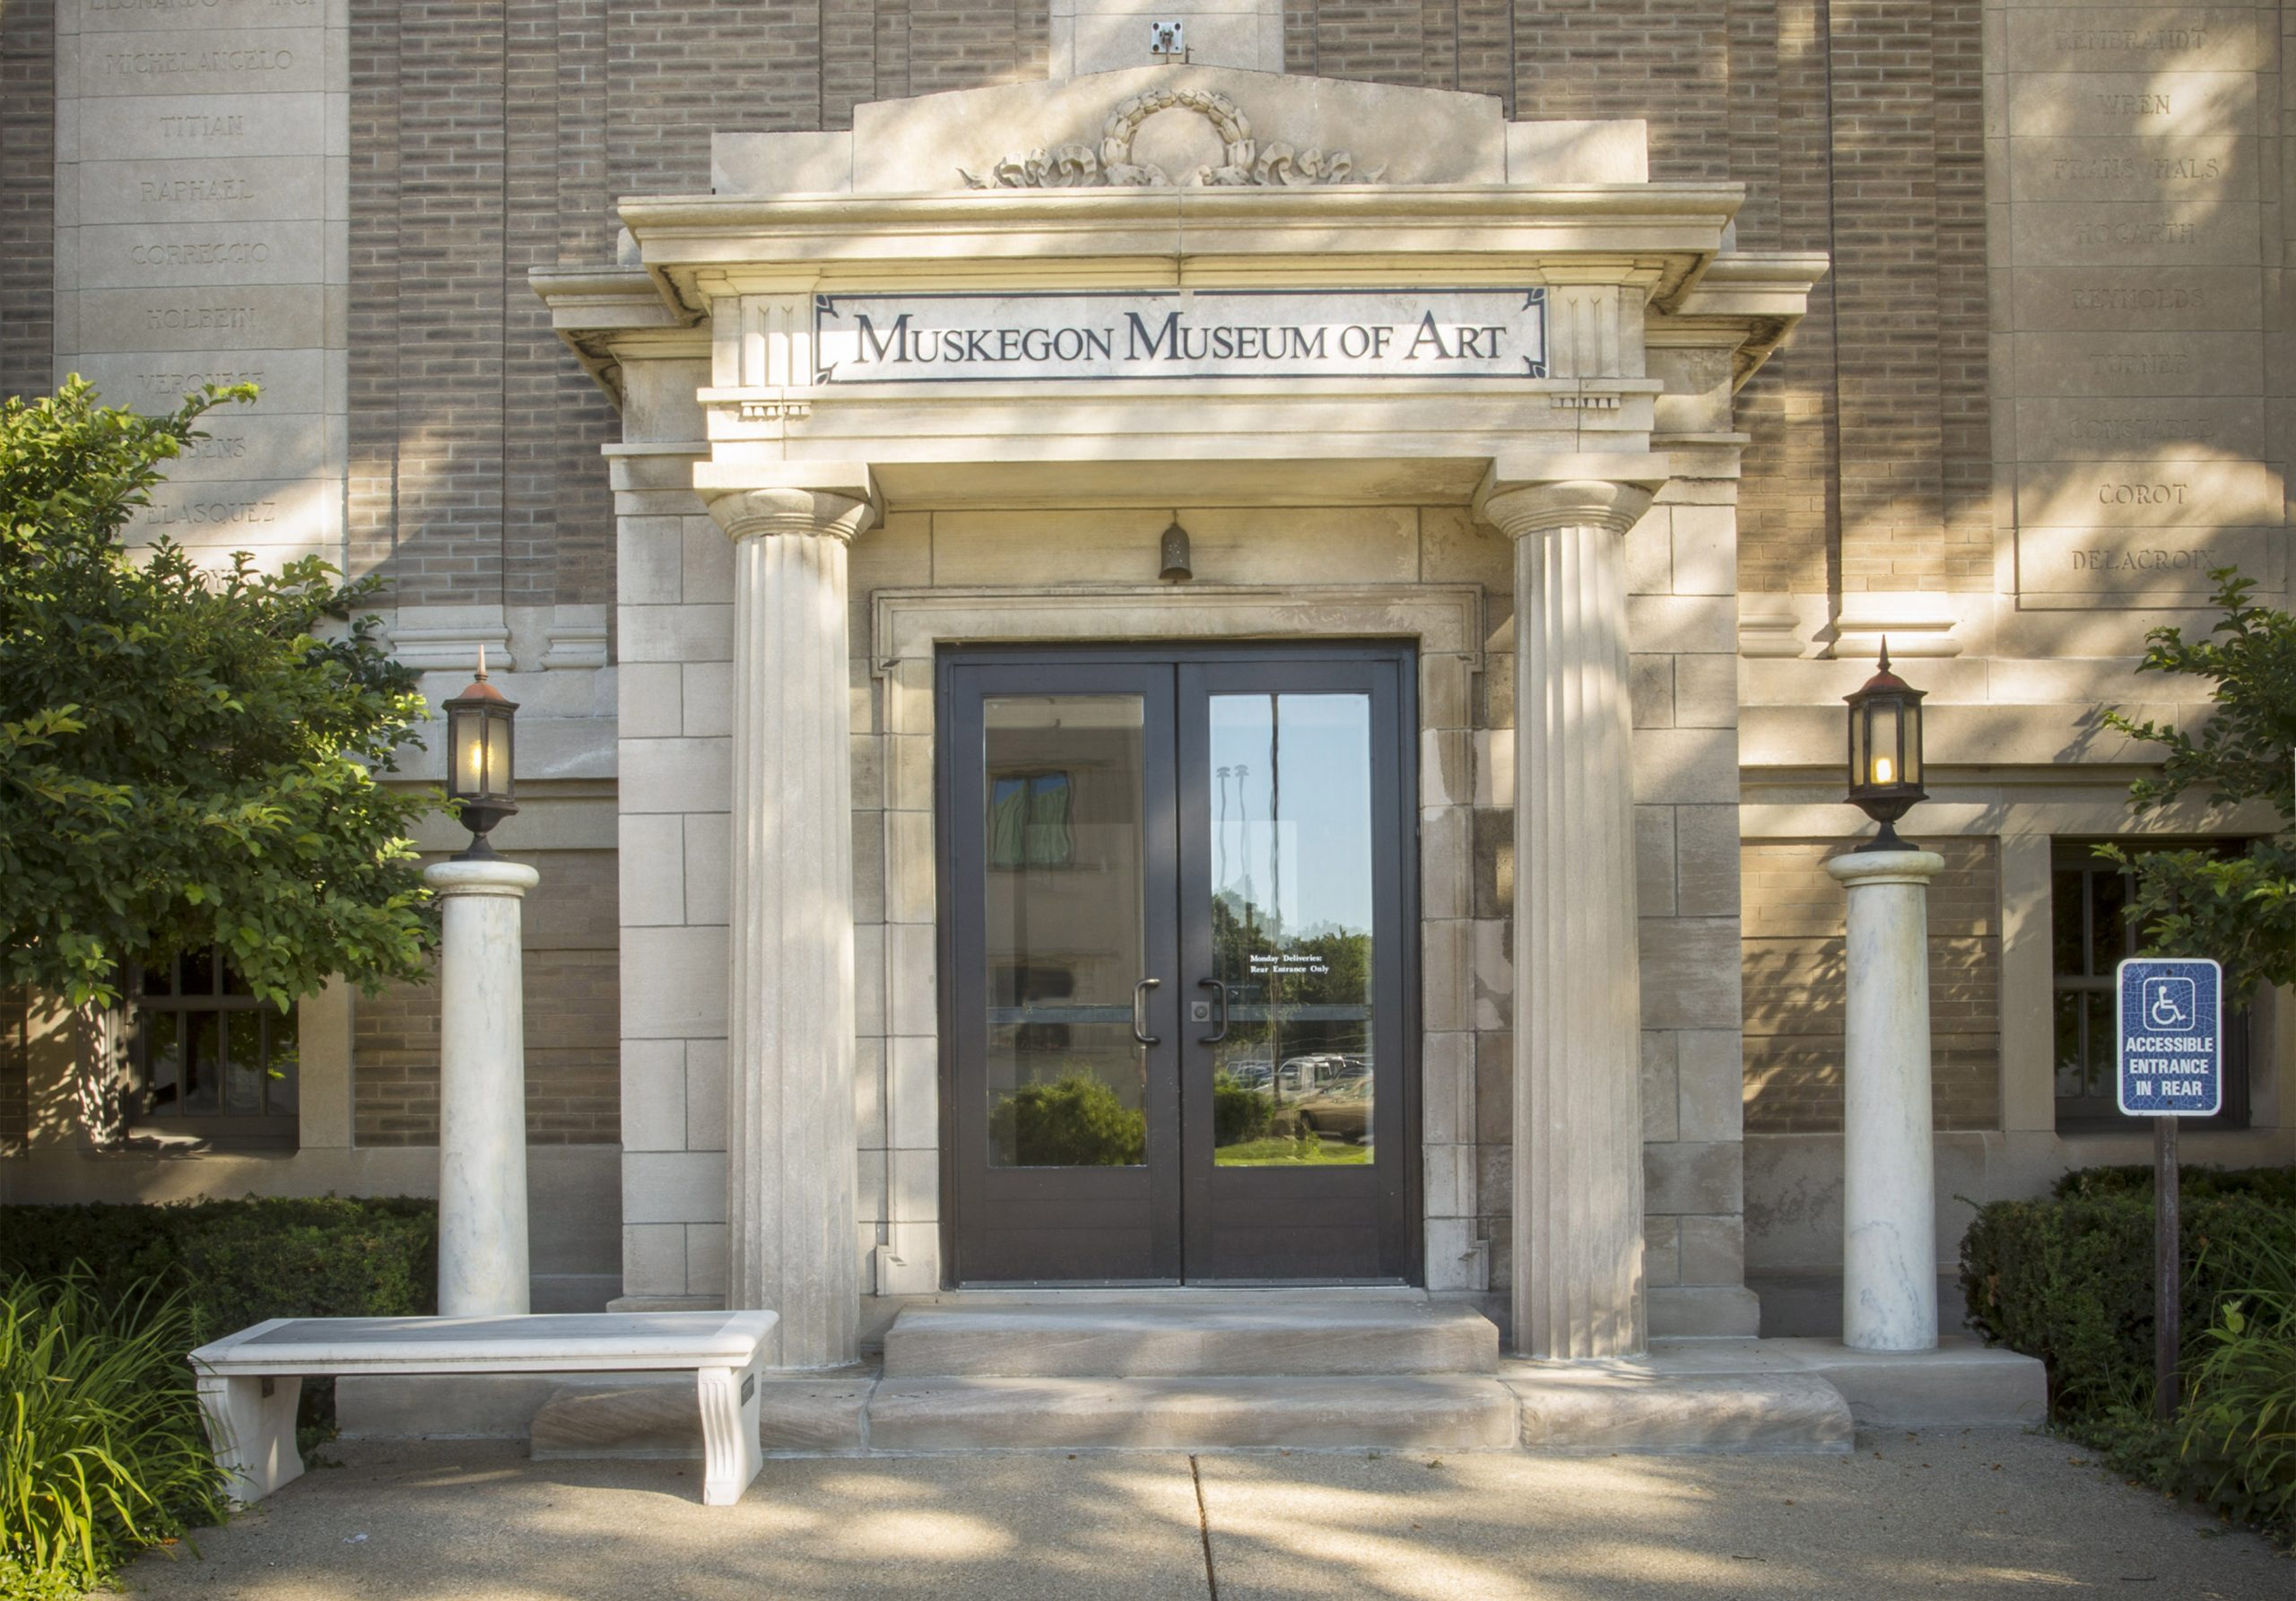 Tan color building with pillars and front doors to the Muskegon Museum of Art